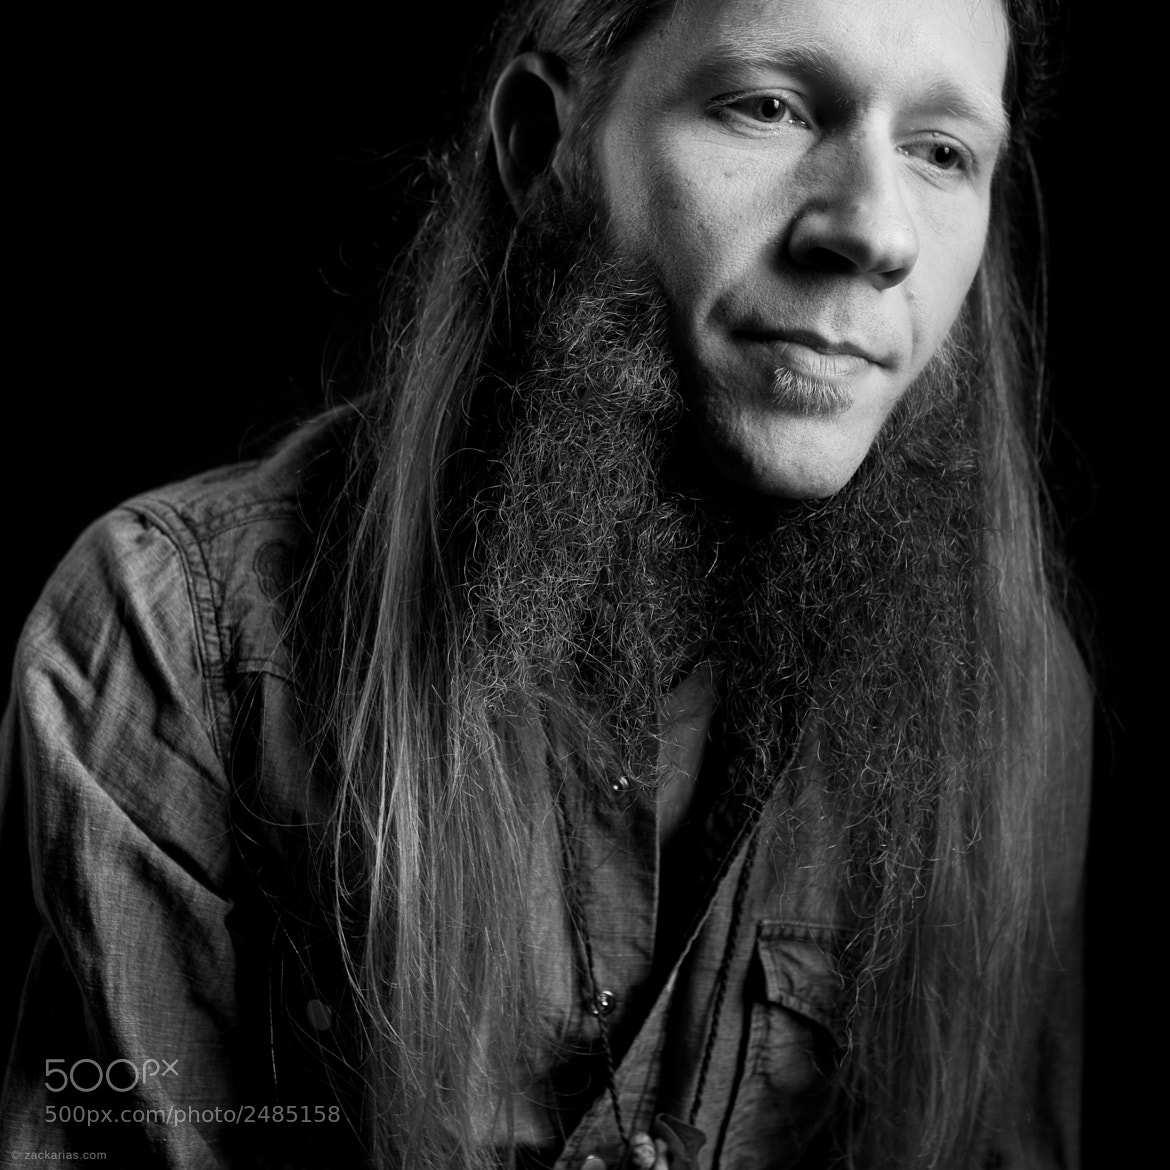 Photograph Blackberry Smoke by Zack Arias on 500px